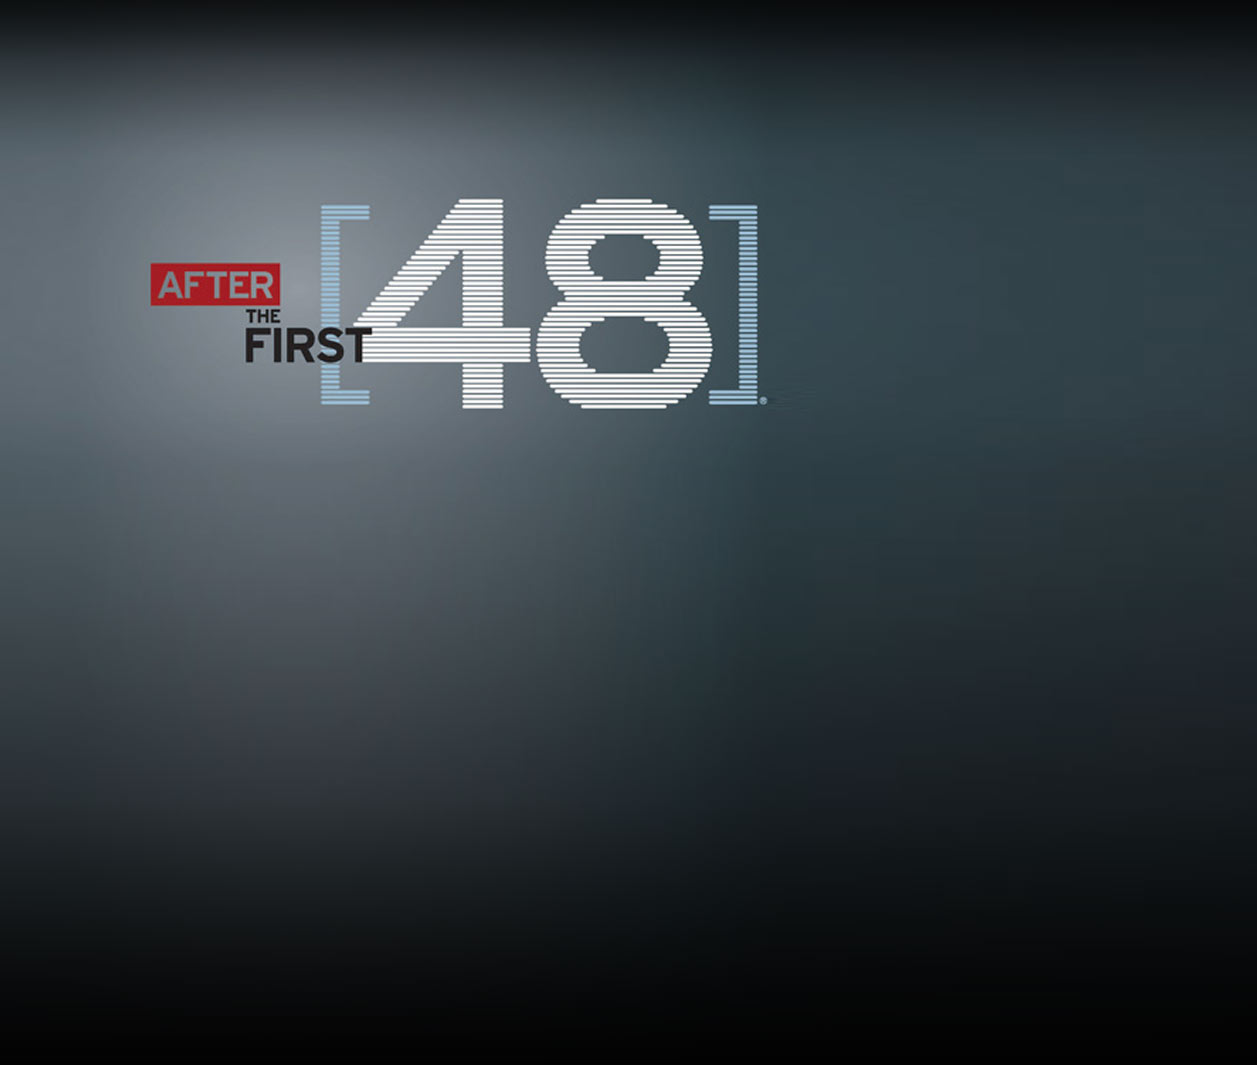 After the first 48 dumped the first 48 episode guide season 13